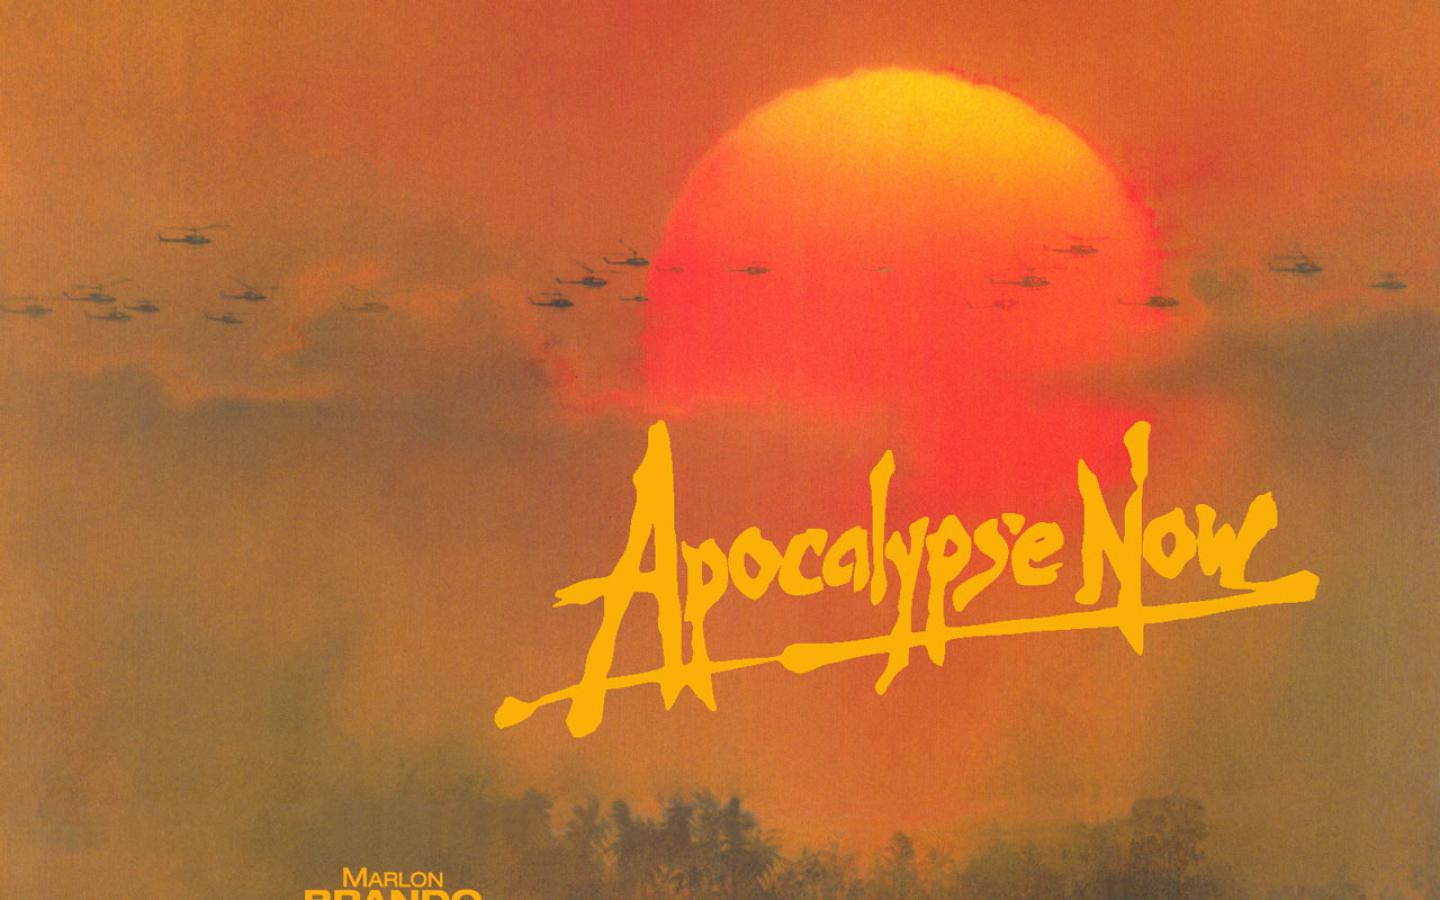 Apocalypse Now Wallpaper 2 1440 x 900 1440x900